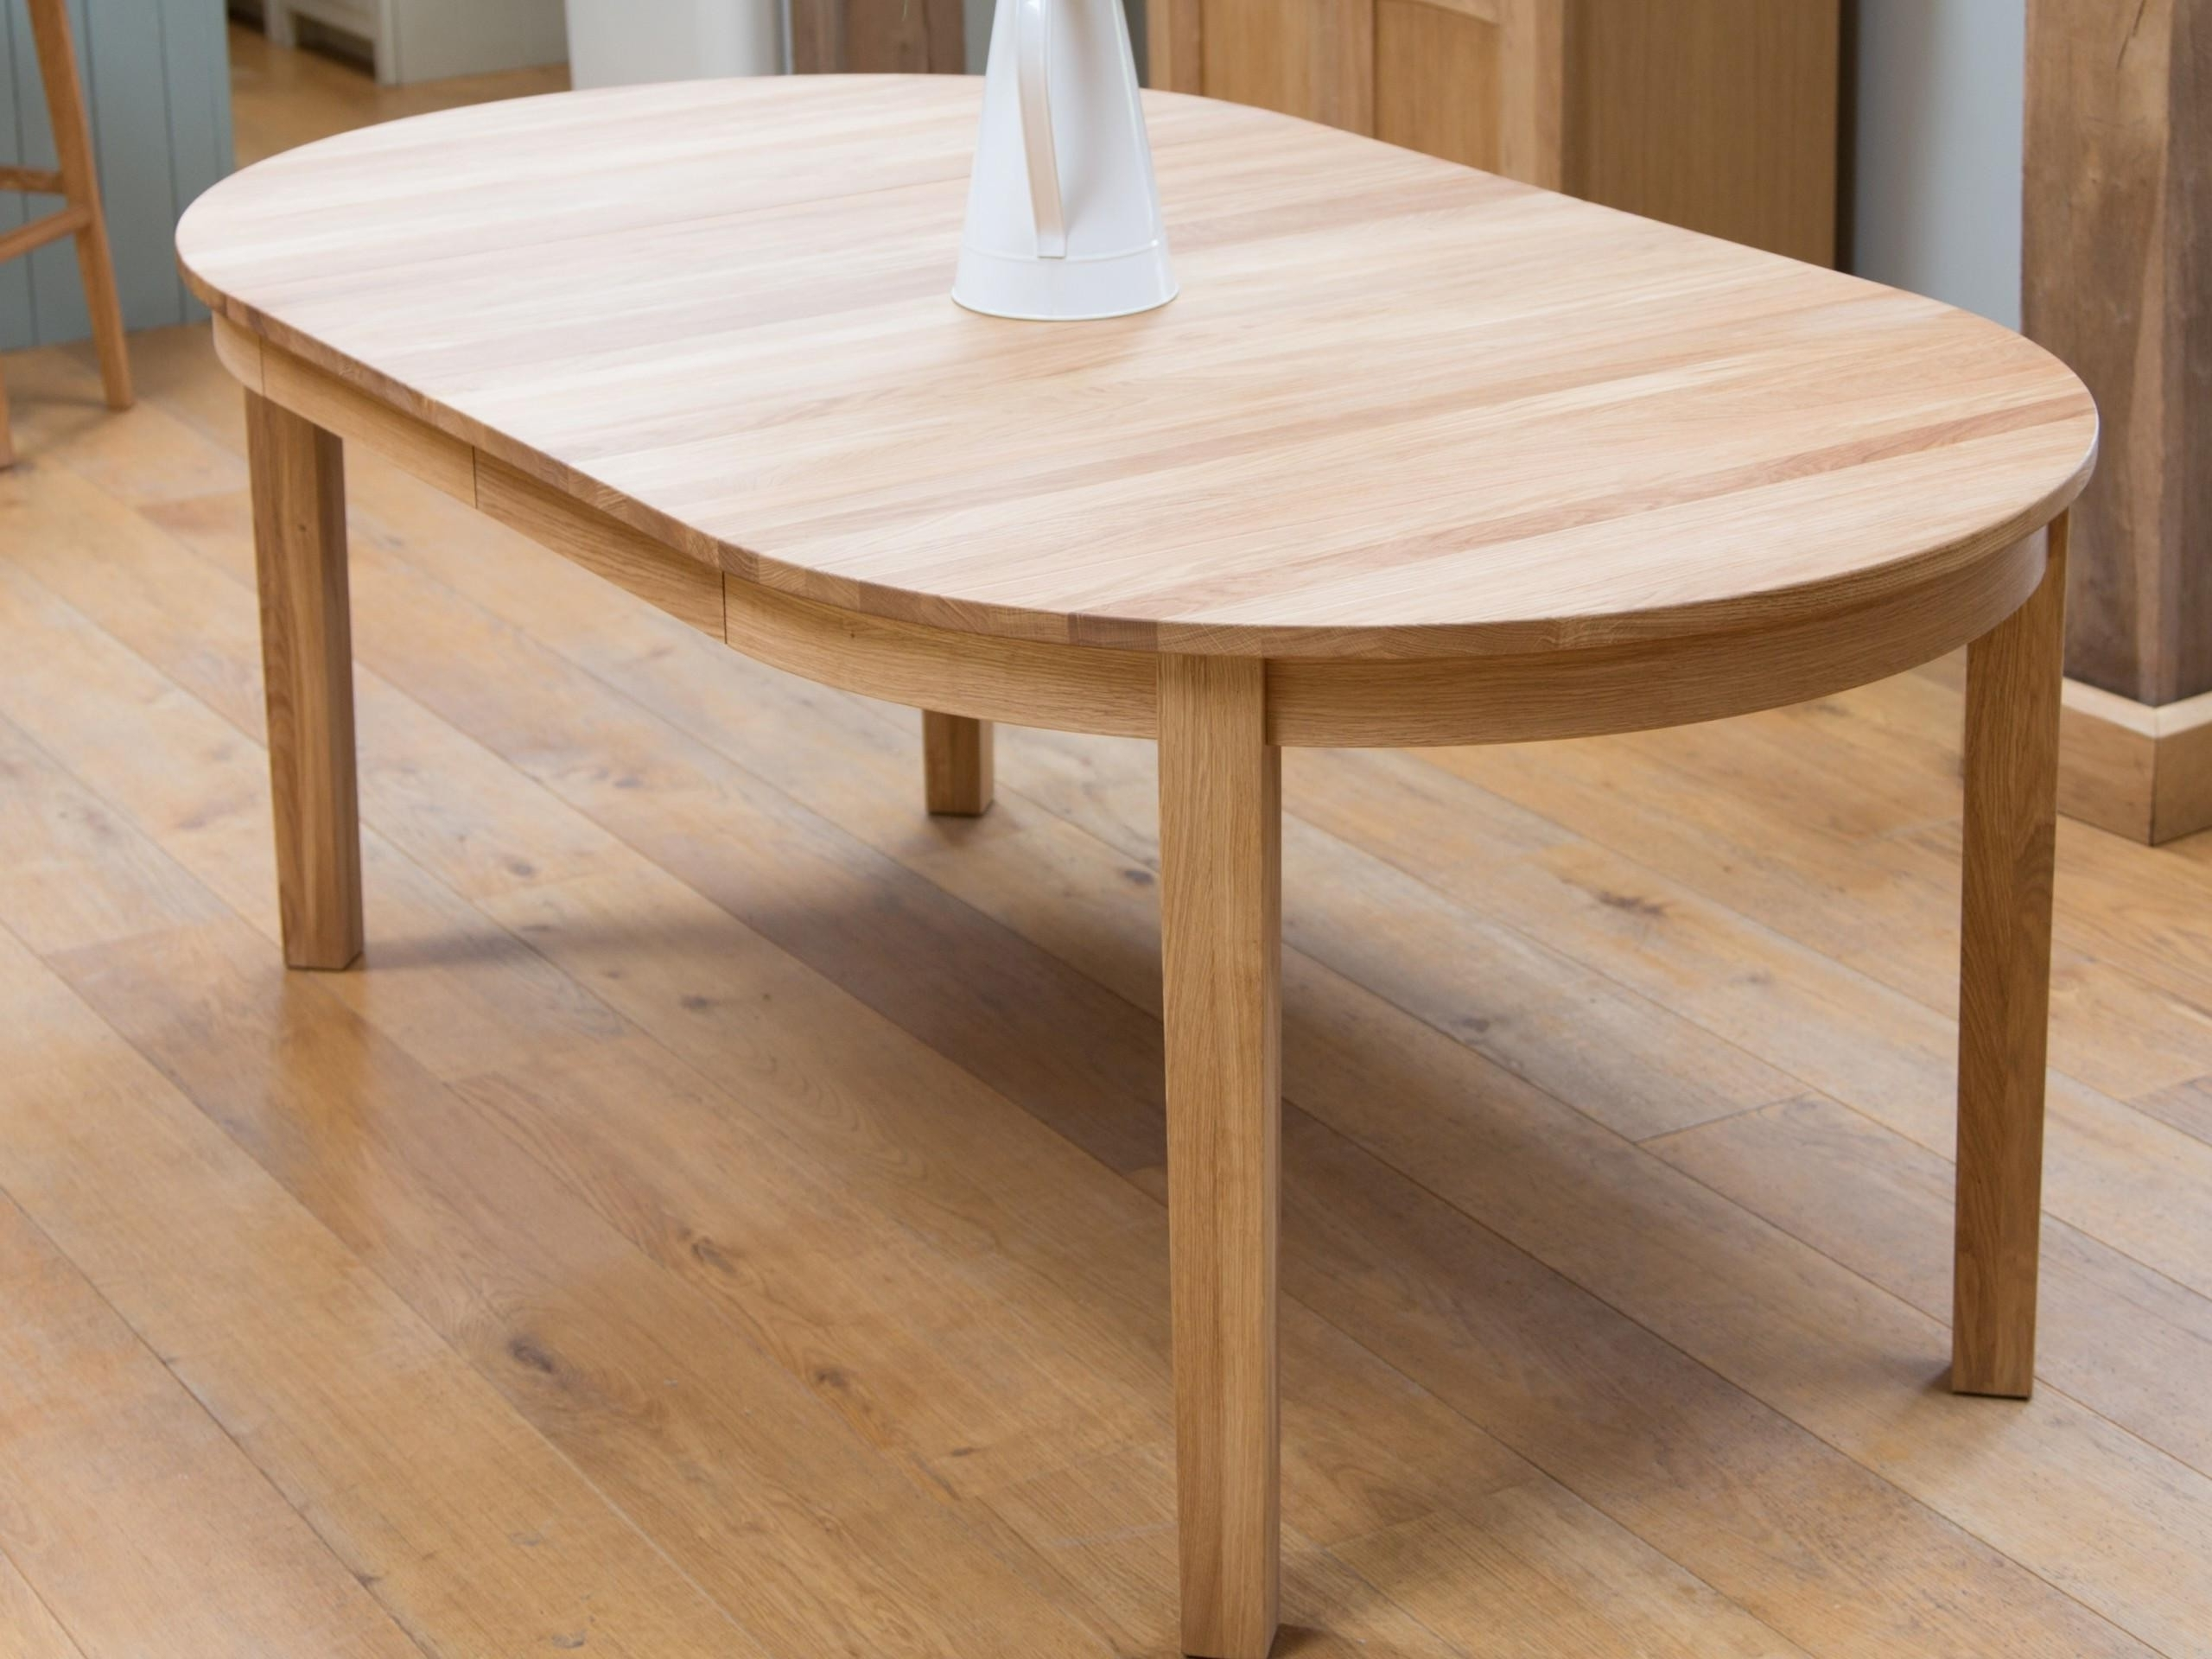 2018 White Square Extending Dining Tables Regarding Extendable Dining Tables For Small Spaces Best Of 79 Elegant Stocks (View 2 of 25)